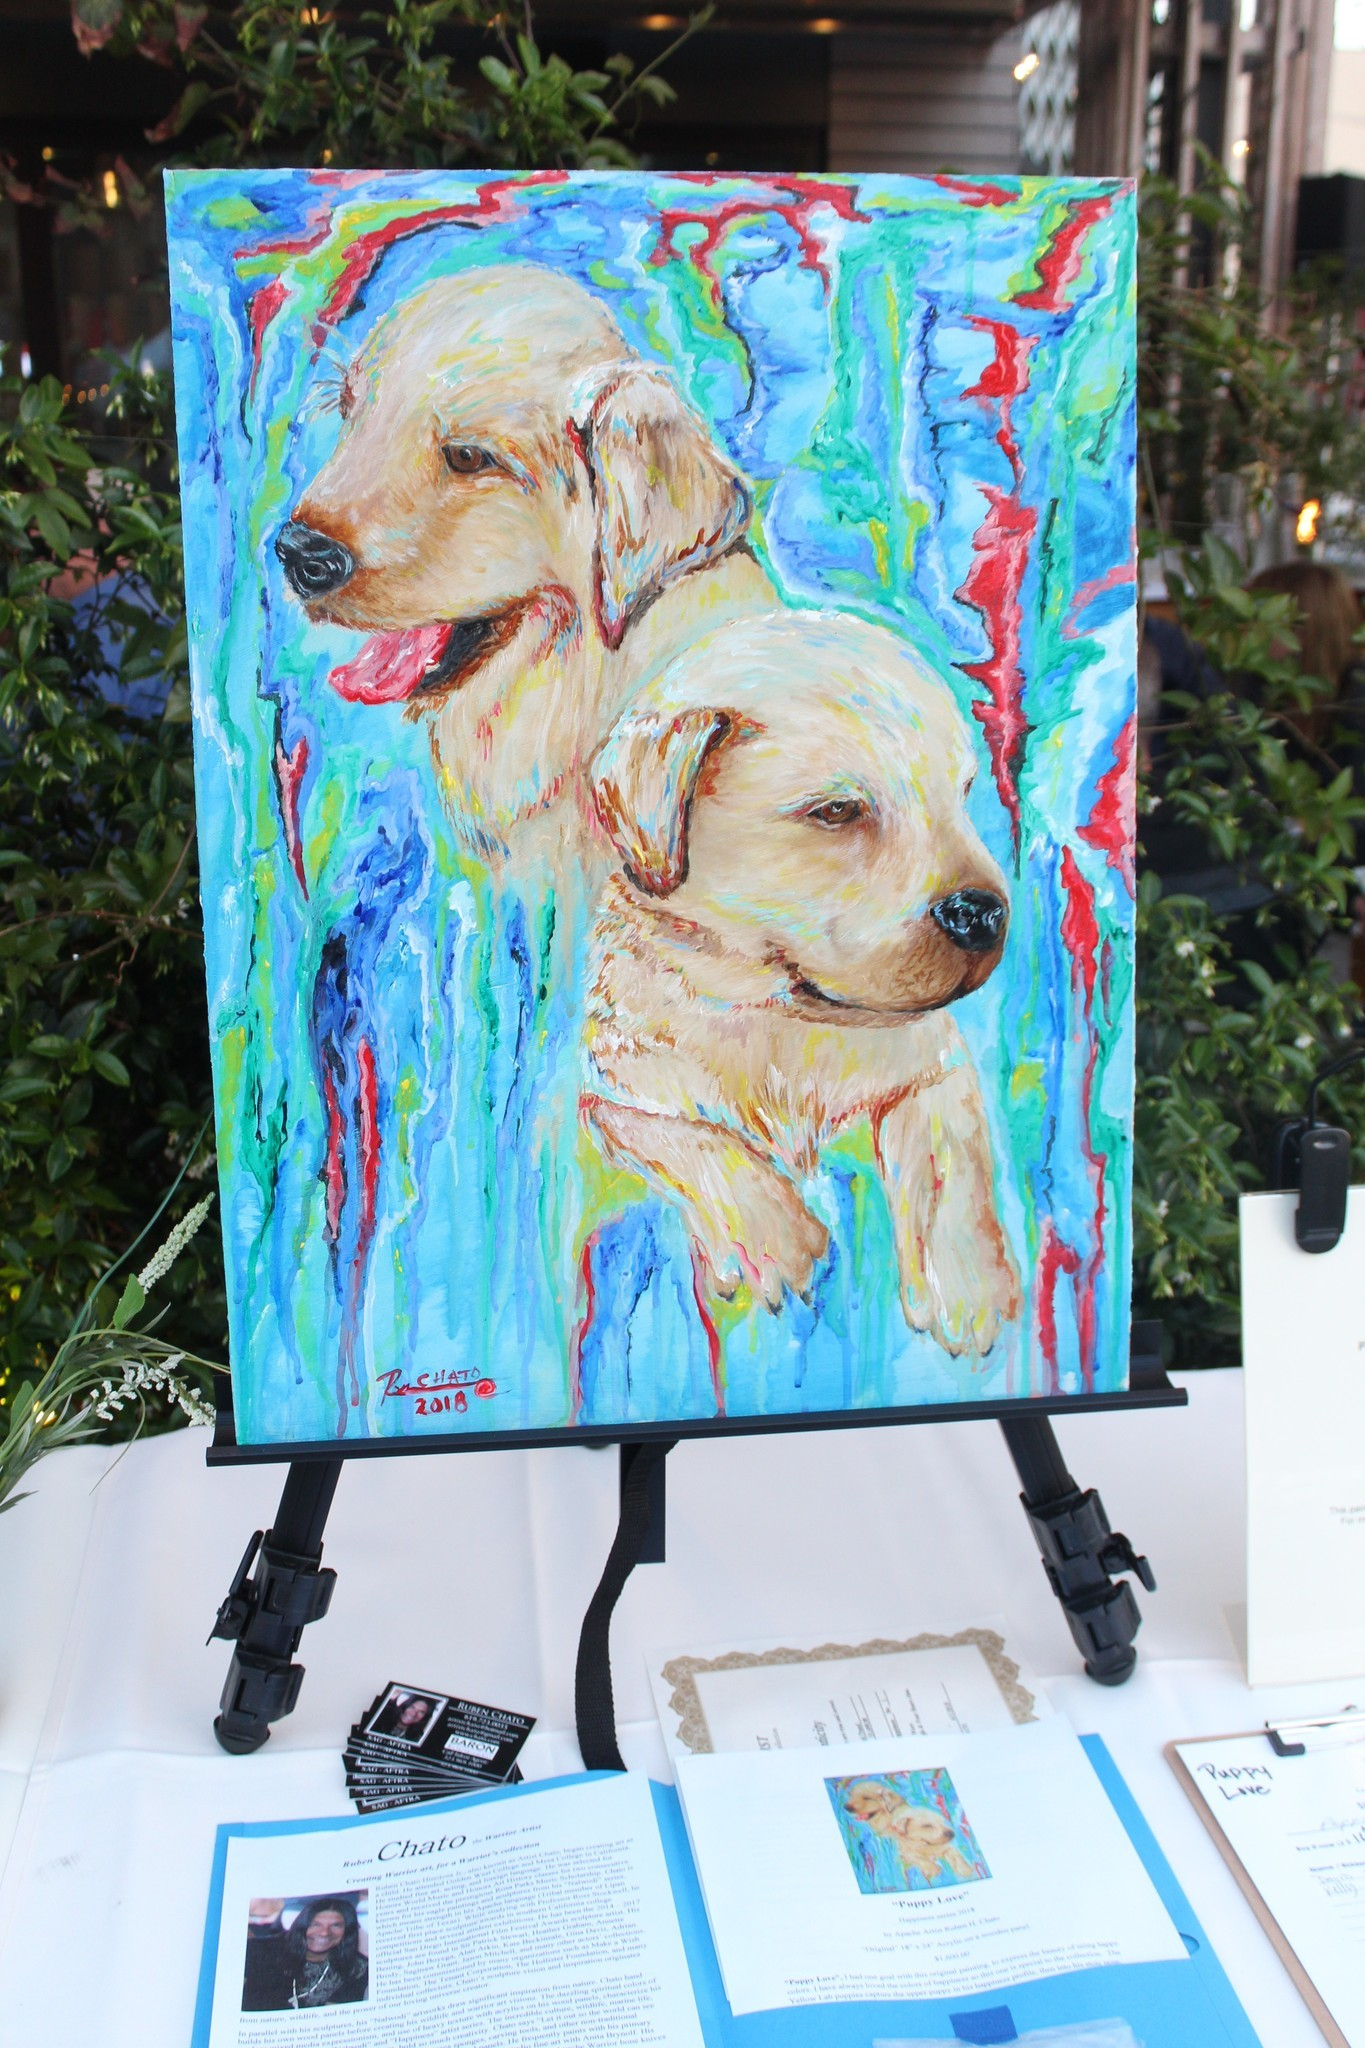 Among the items up for silent auction are 'Puppy Love,' an acrylic-on-wood by Apache artist Ruben H. Chato, valued at $1,600.